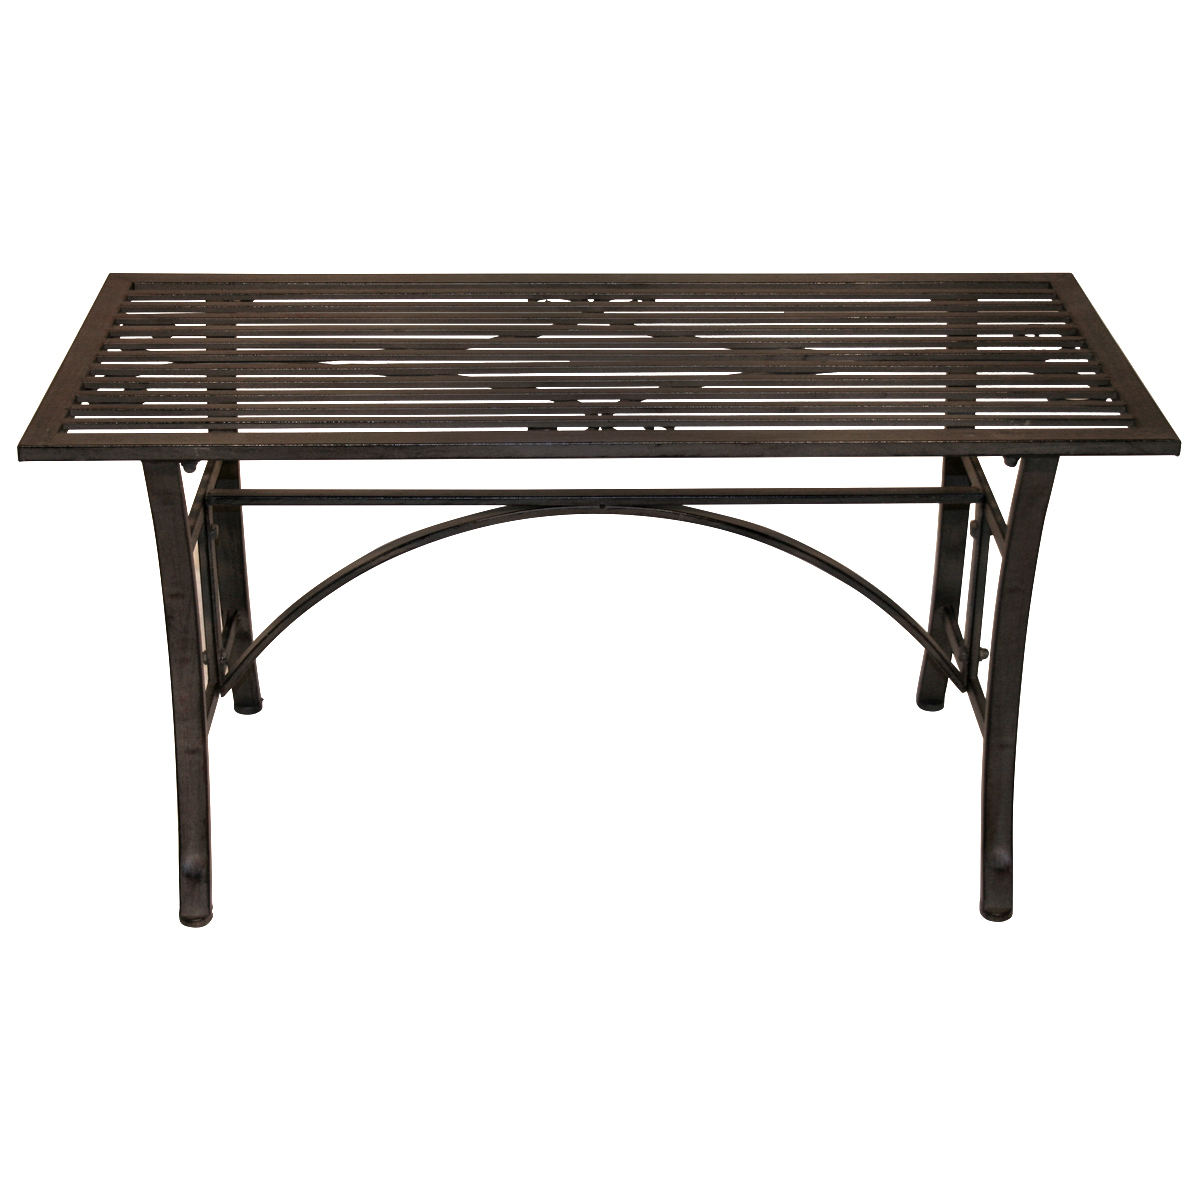 Charles Bentley Wrought Iron Coffee Table Outdoor Patio